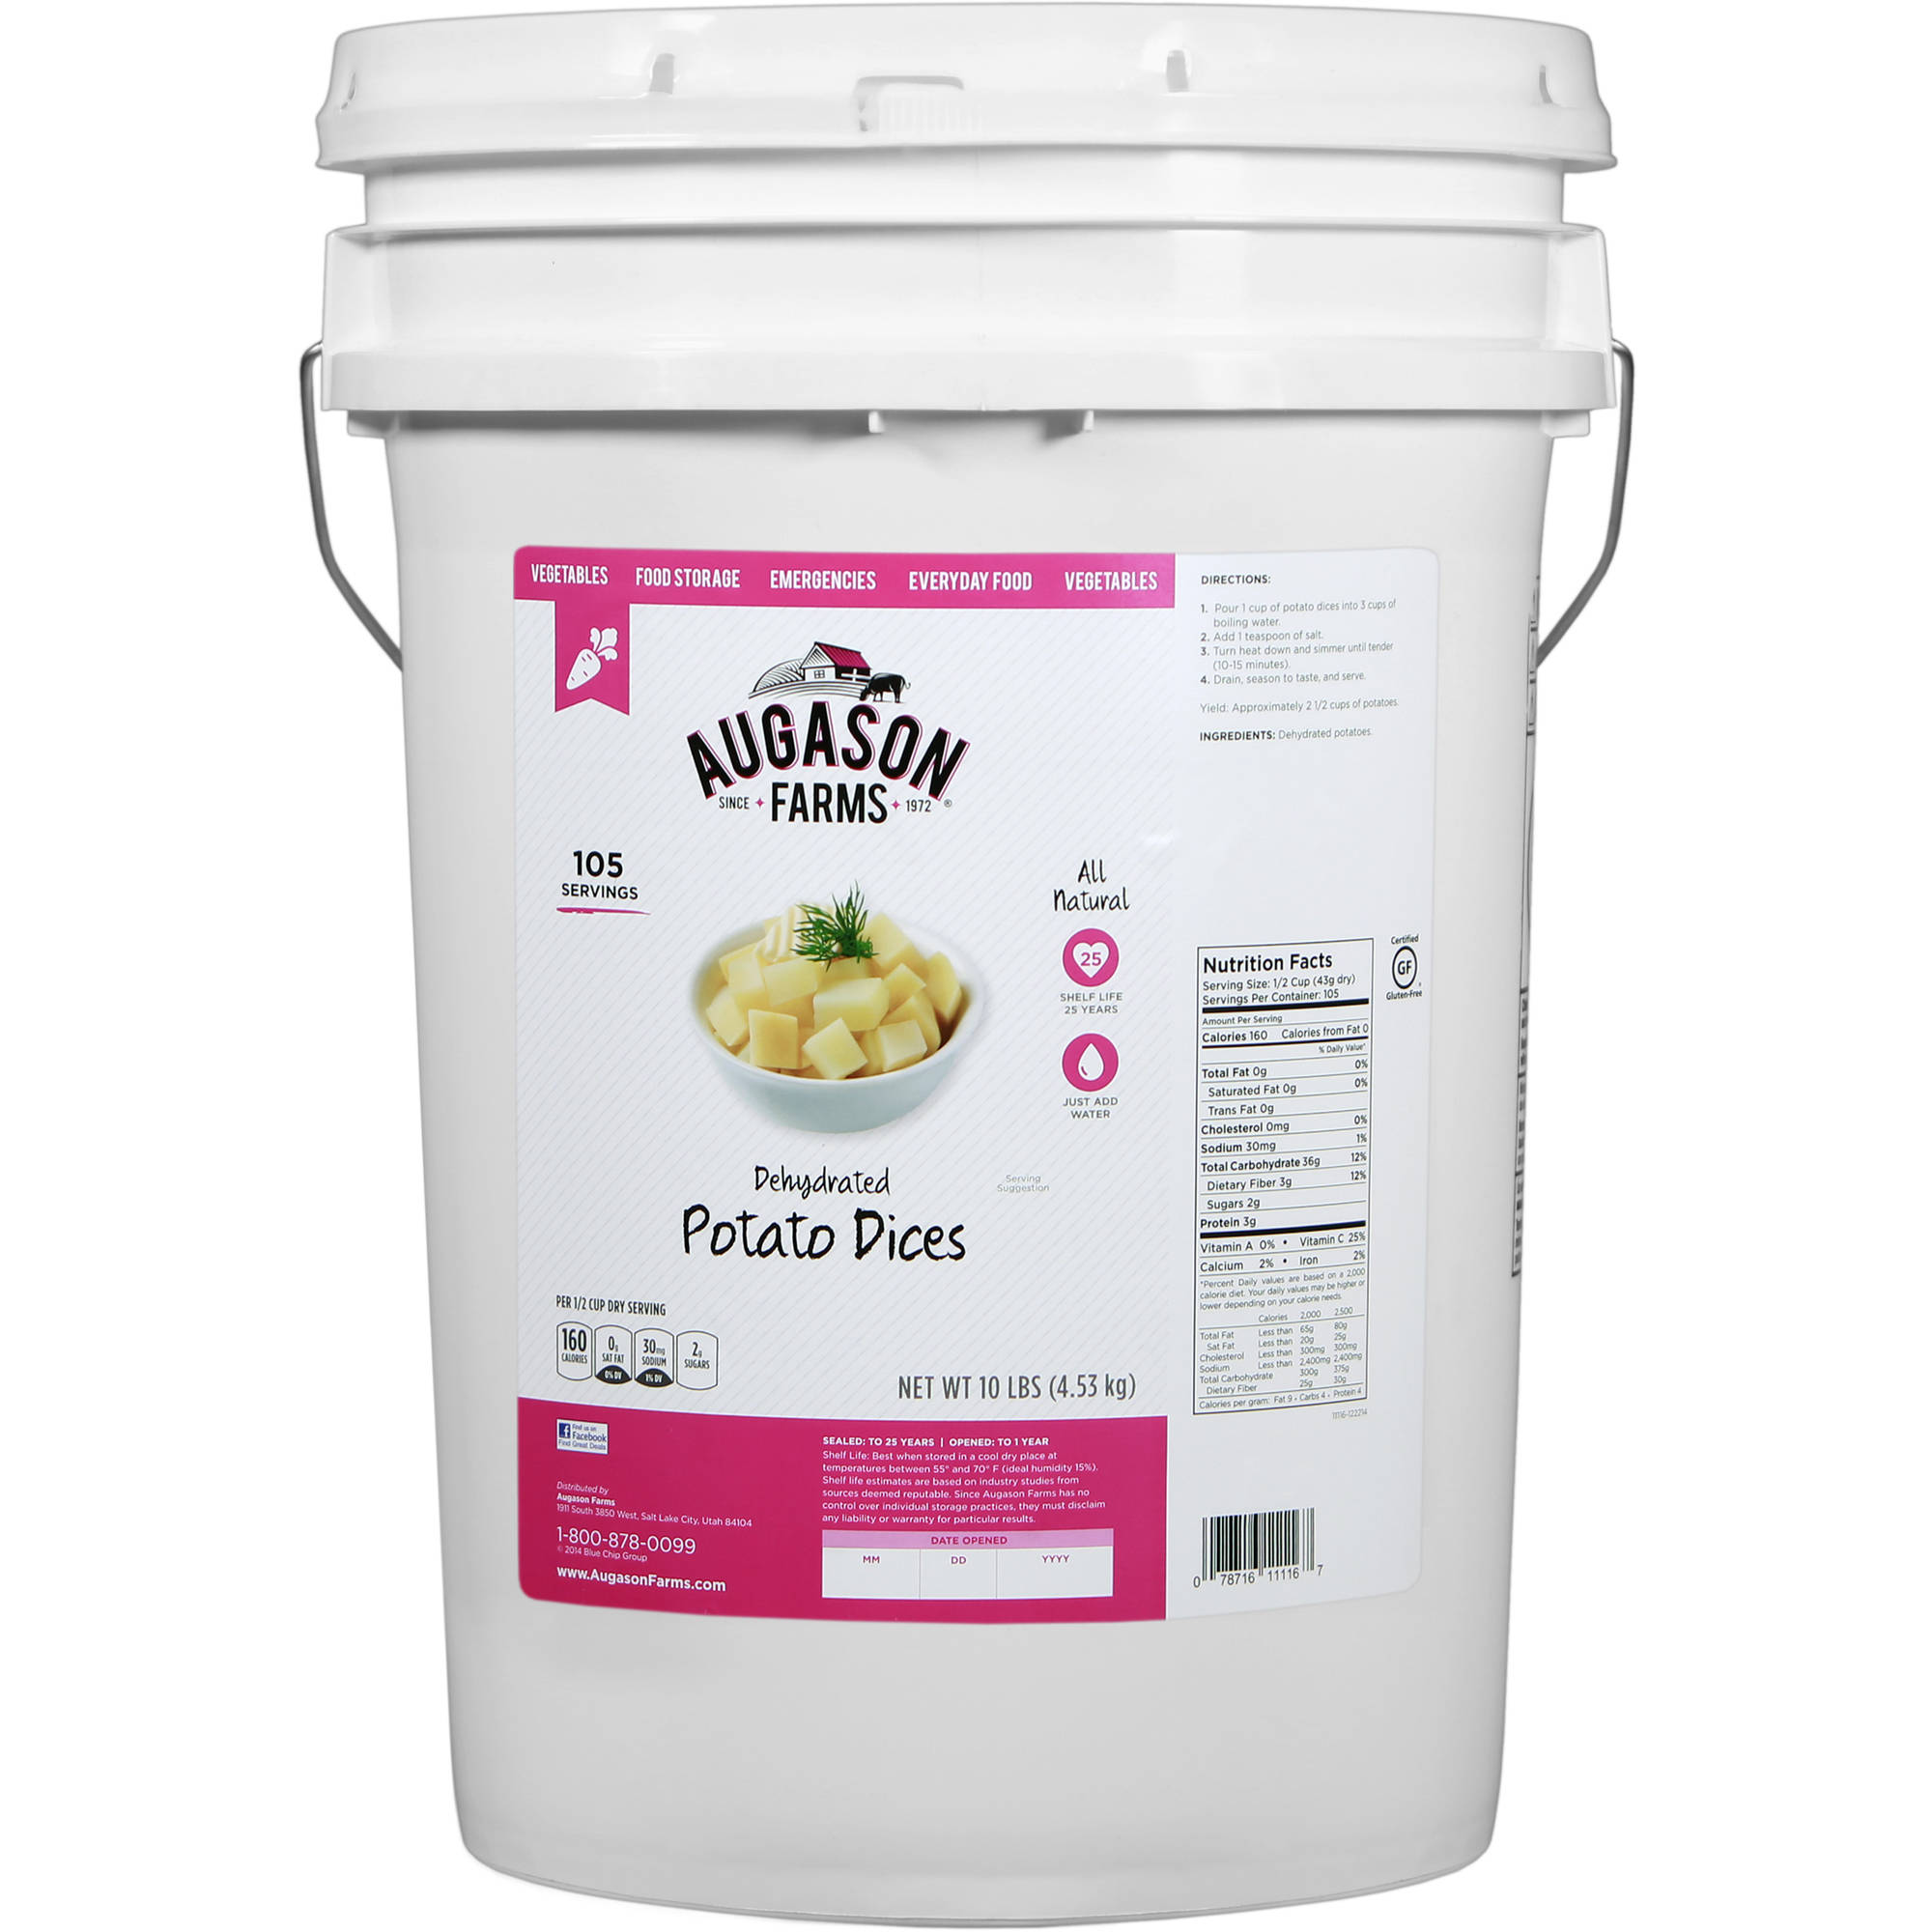 Augason Farms Dehydrated Potato Dices, 10 lbs